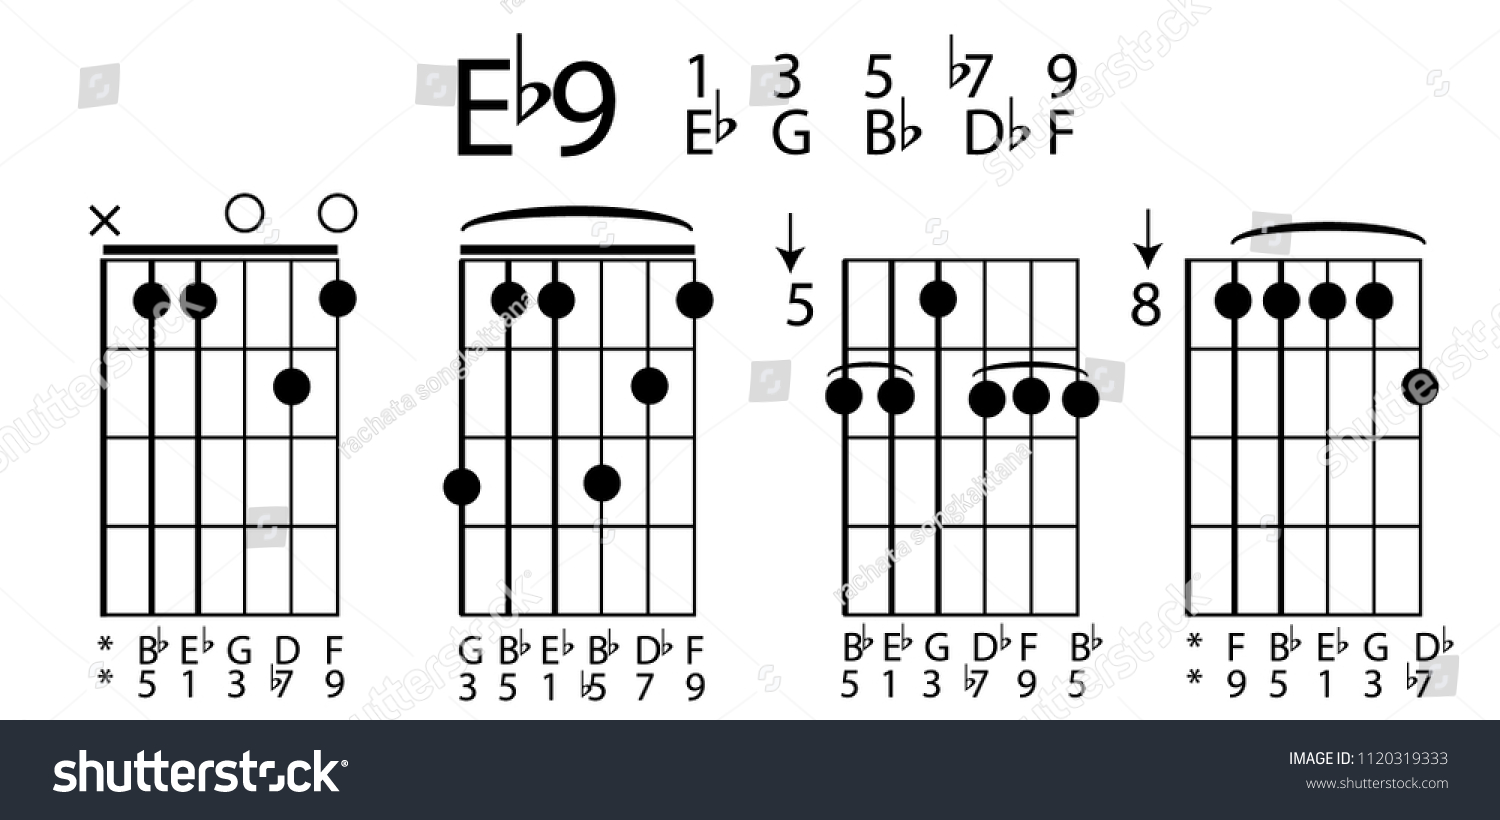 B5 Piano Chord Gallery Piano Chord Chart With Finger Positions